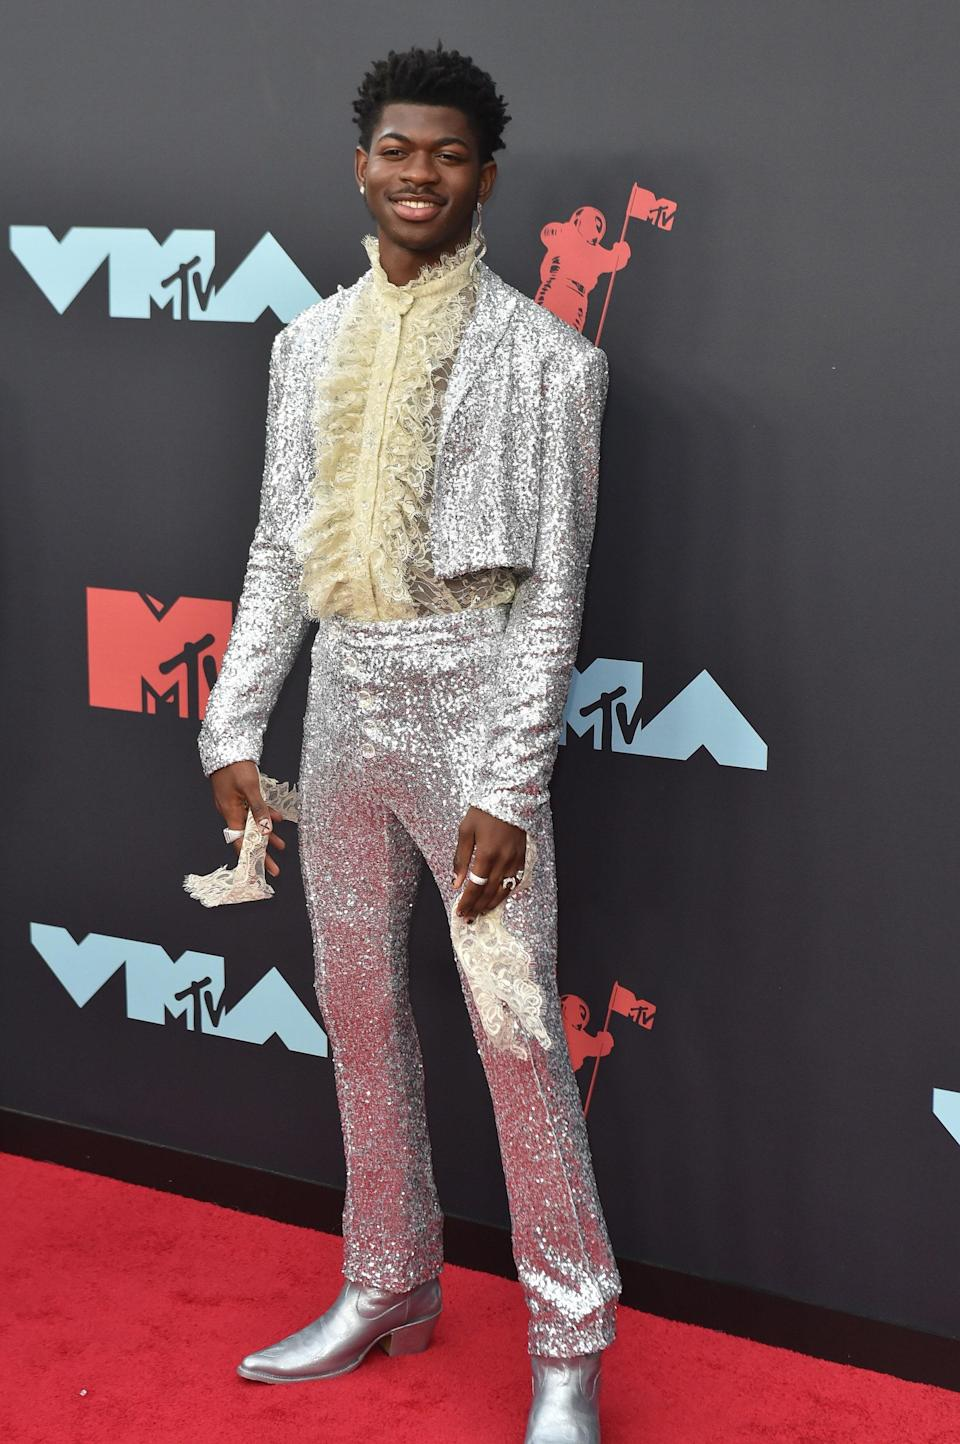 This sequin stunner for the VMAs paired perfectly with a ruffled top gave us <em>all</em> the Prince vibes.